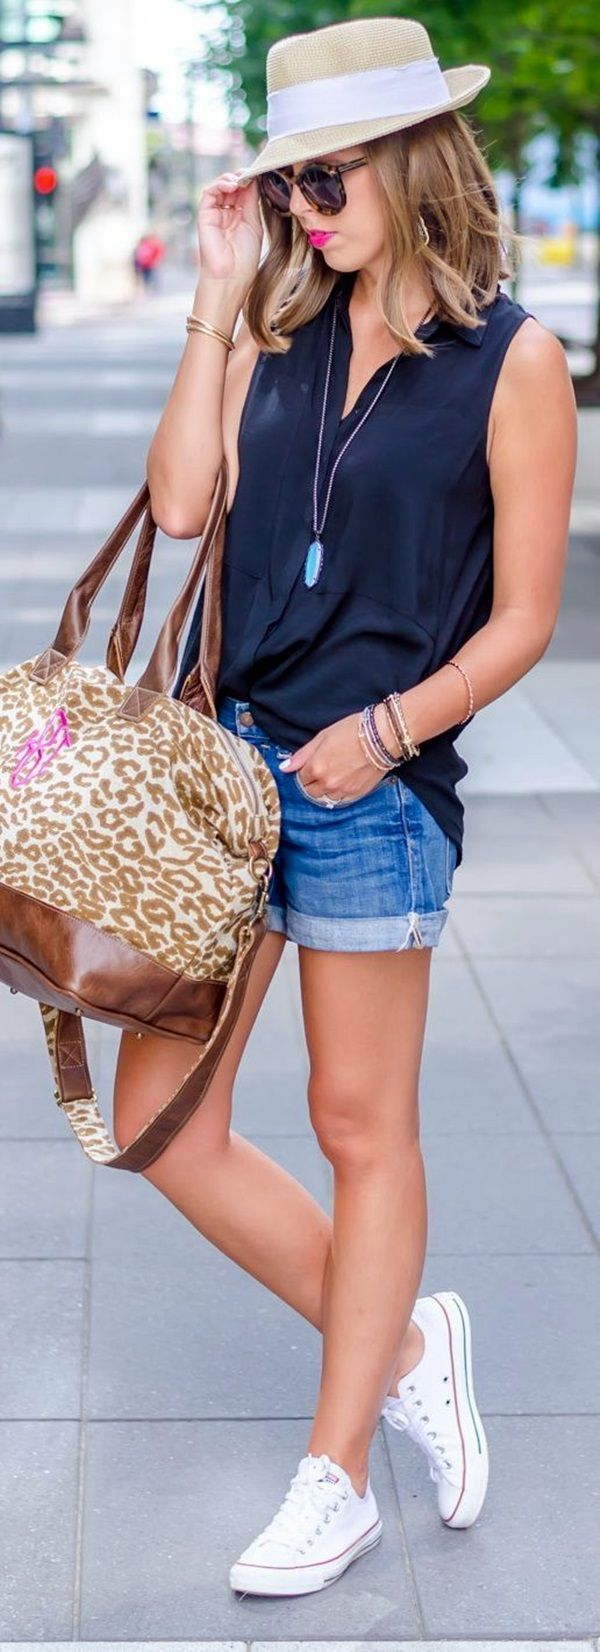 This is an easy yet pulled together sightseeing outfit for a beach vacation. Just swap your logo tank or tee for a nice top and voila! Instant style upgrade. Click this link to see more packing tips and travel wardrobe ideas: http://travelfashiongirl.com/ #travel #packing #tips @travlfashngirl